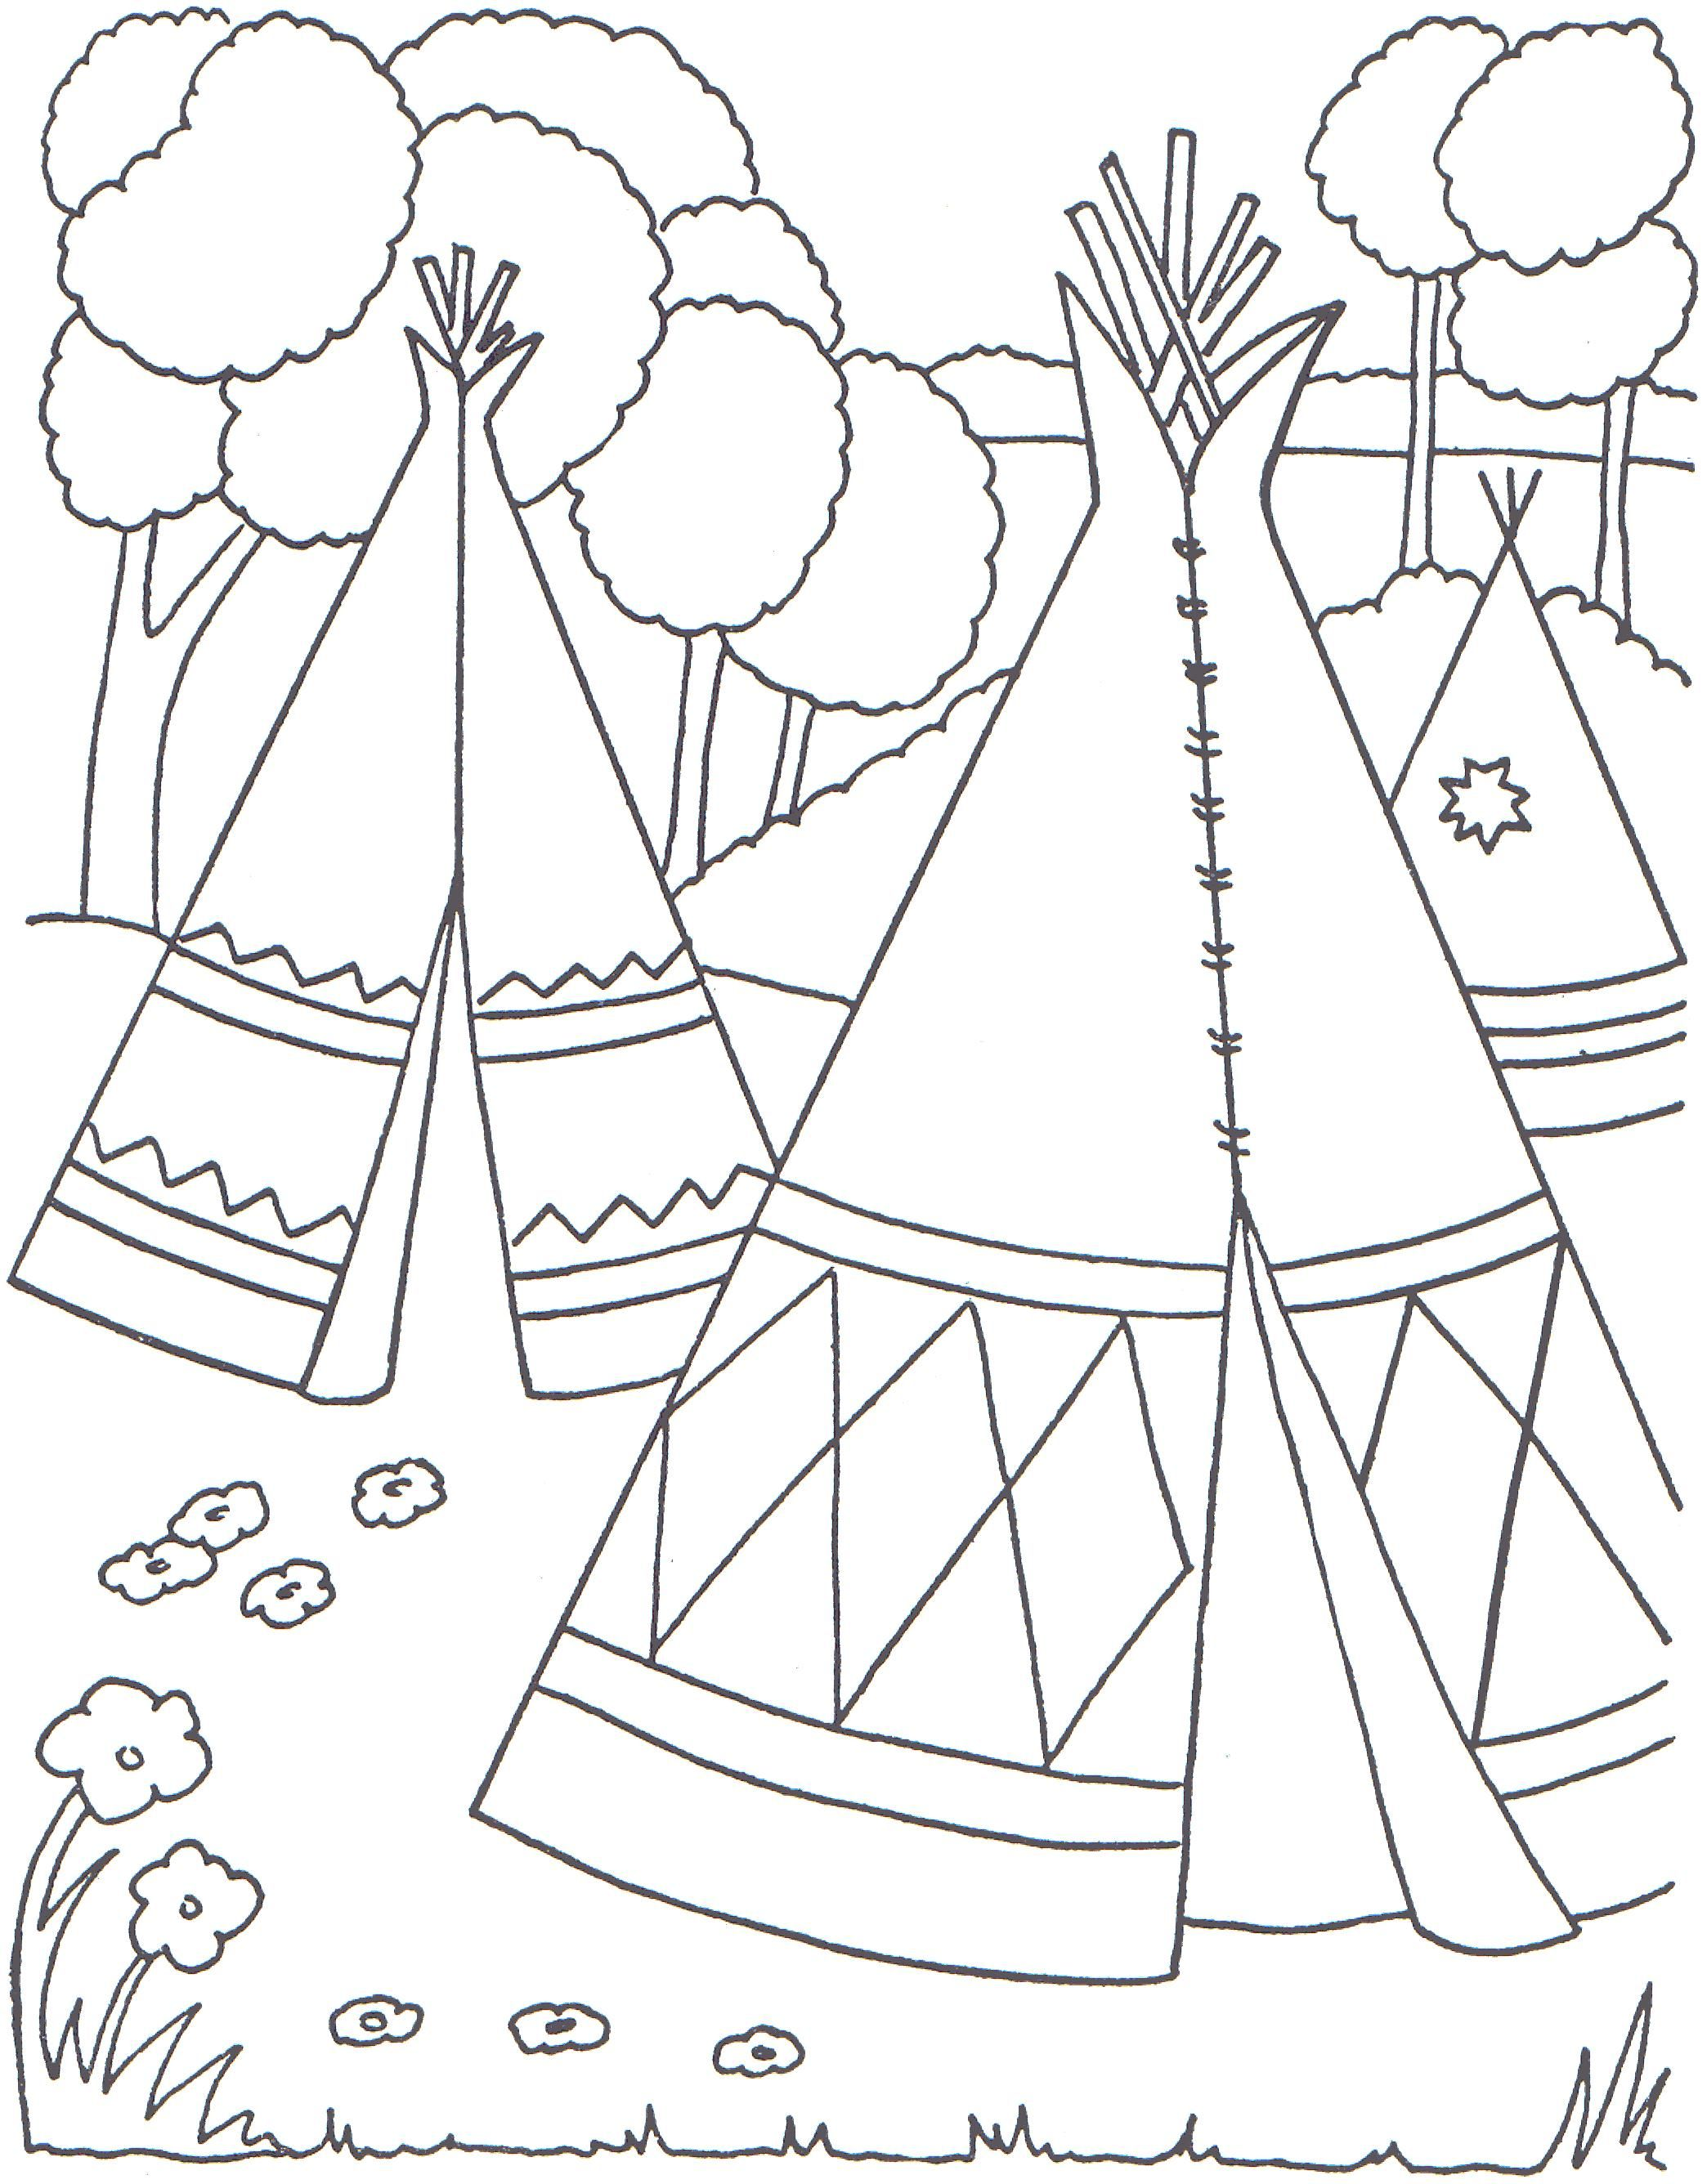 Cowboys and Indians Coloring Pages | Indian Coloring Pages ...